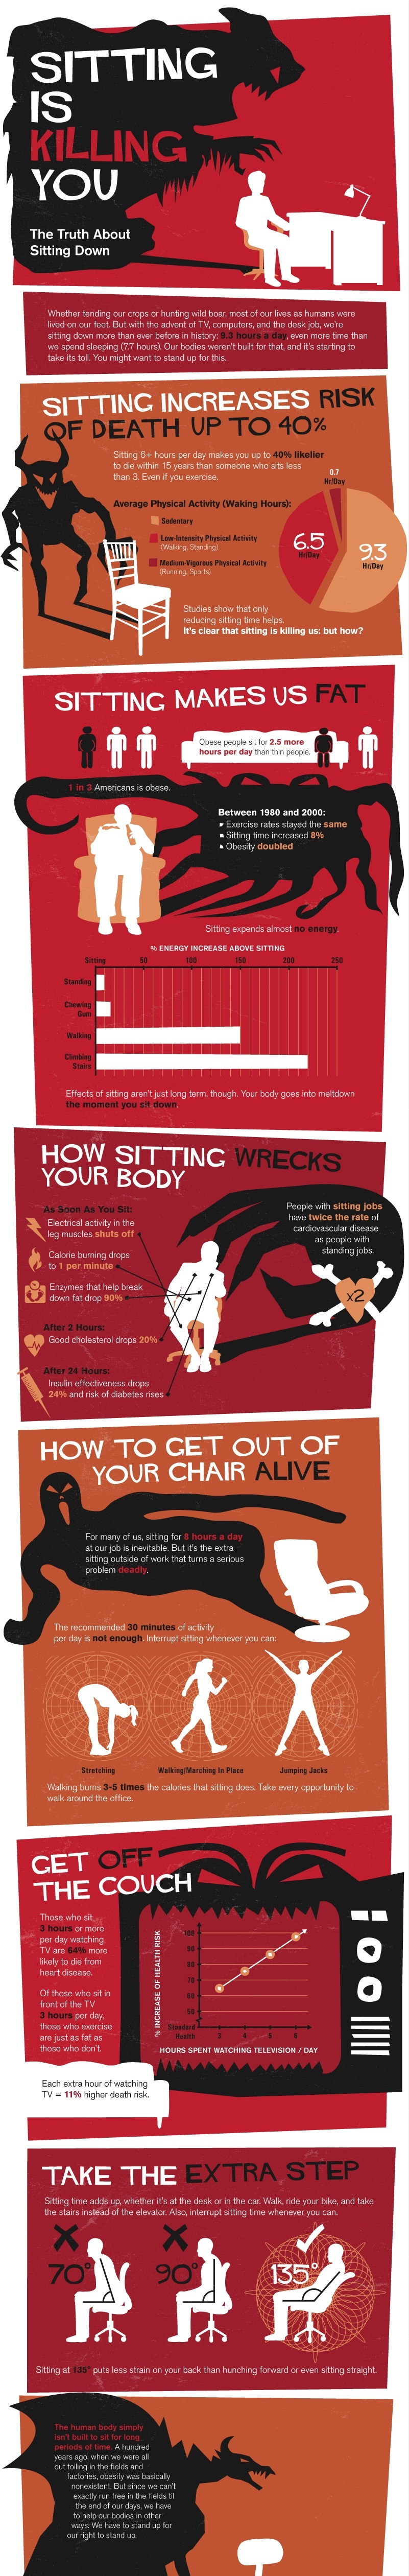 reason-why-sitting-is-killing-you